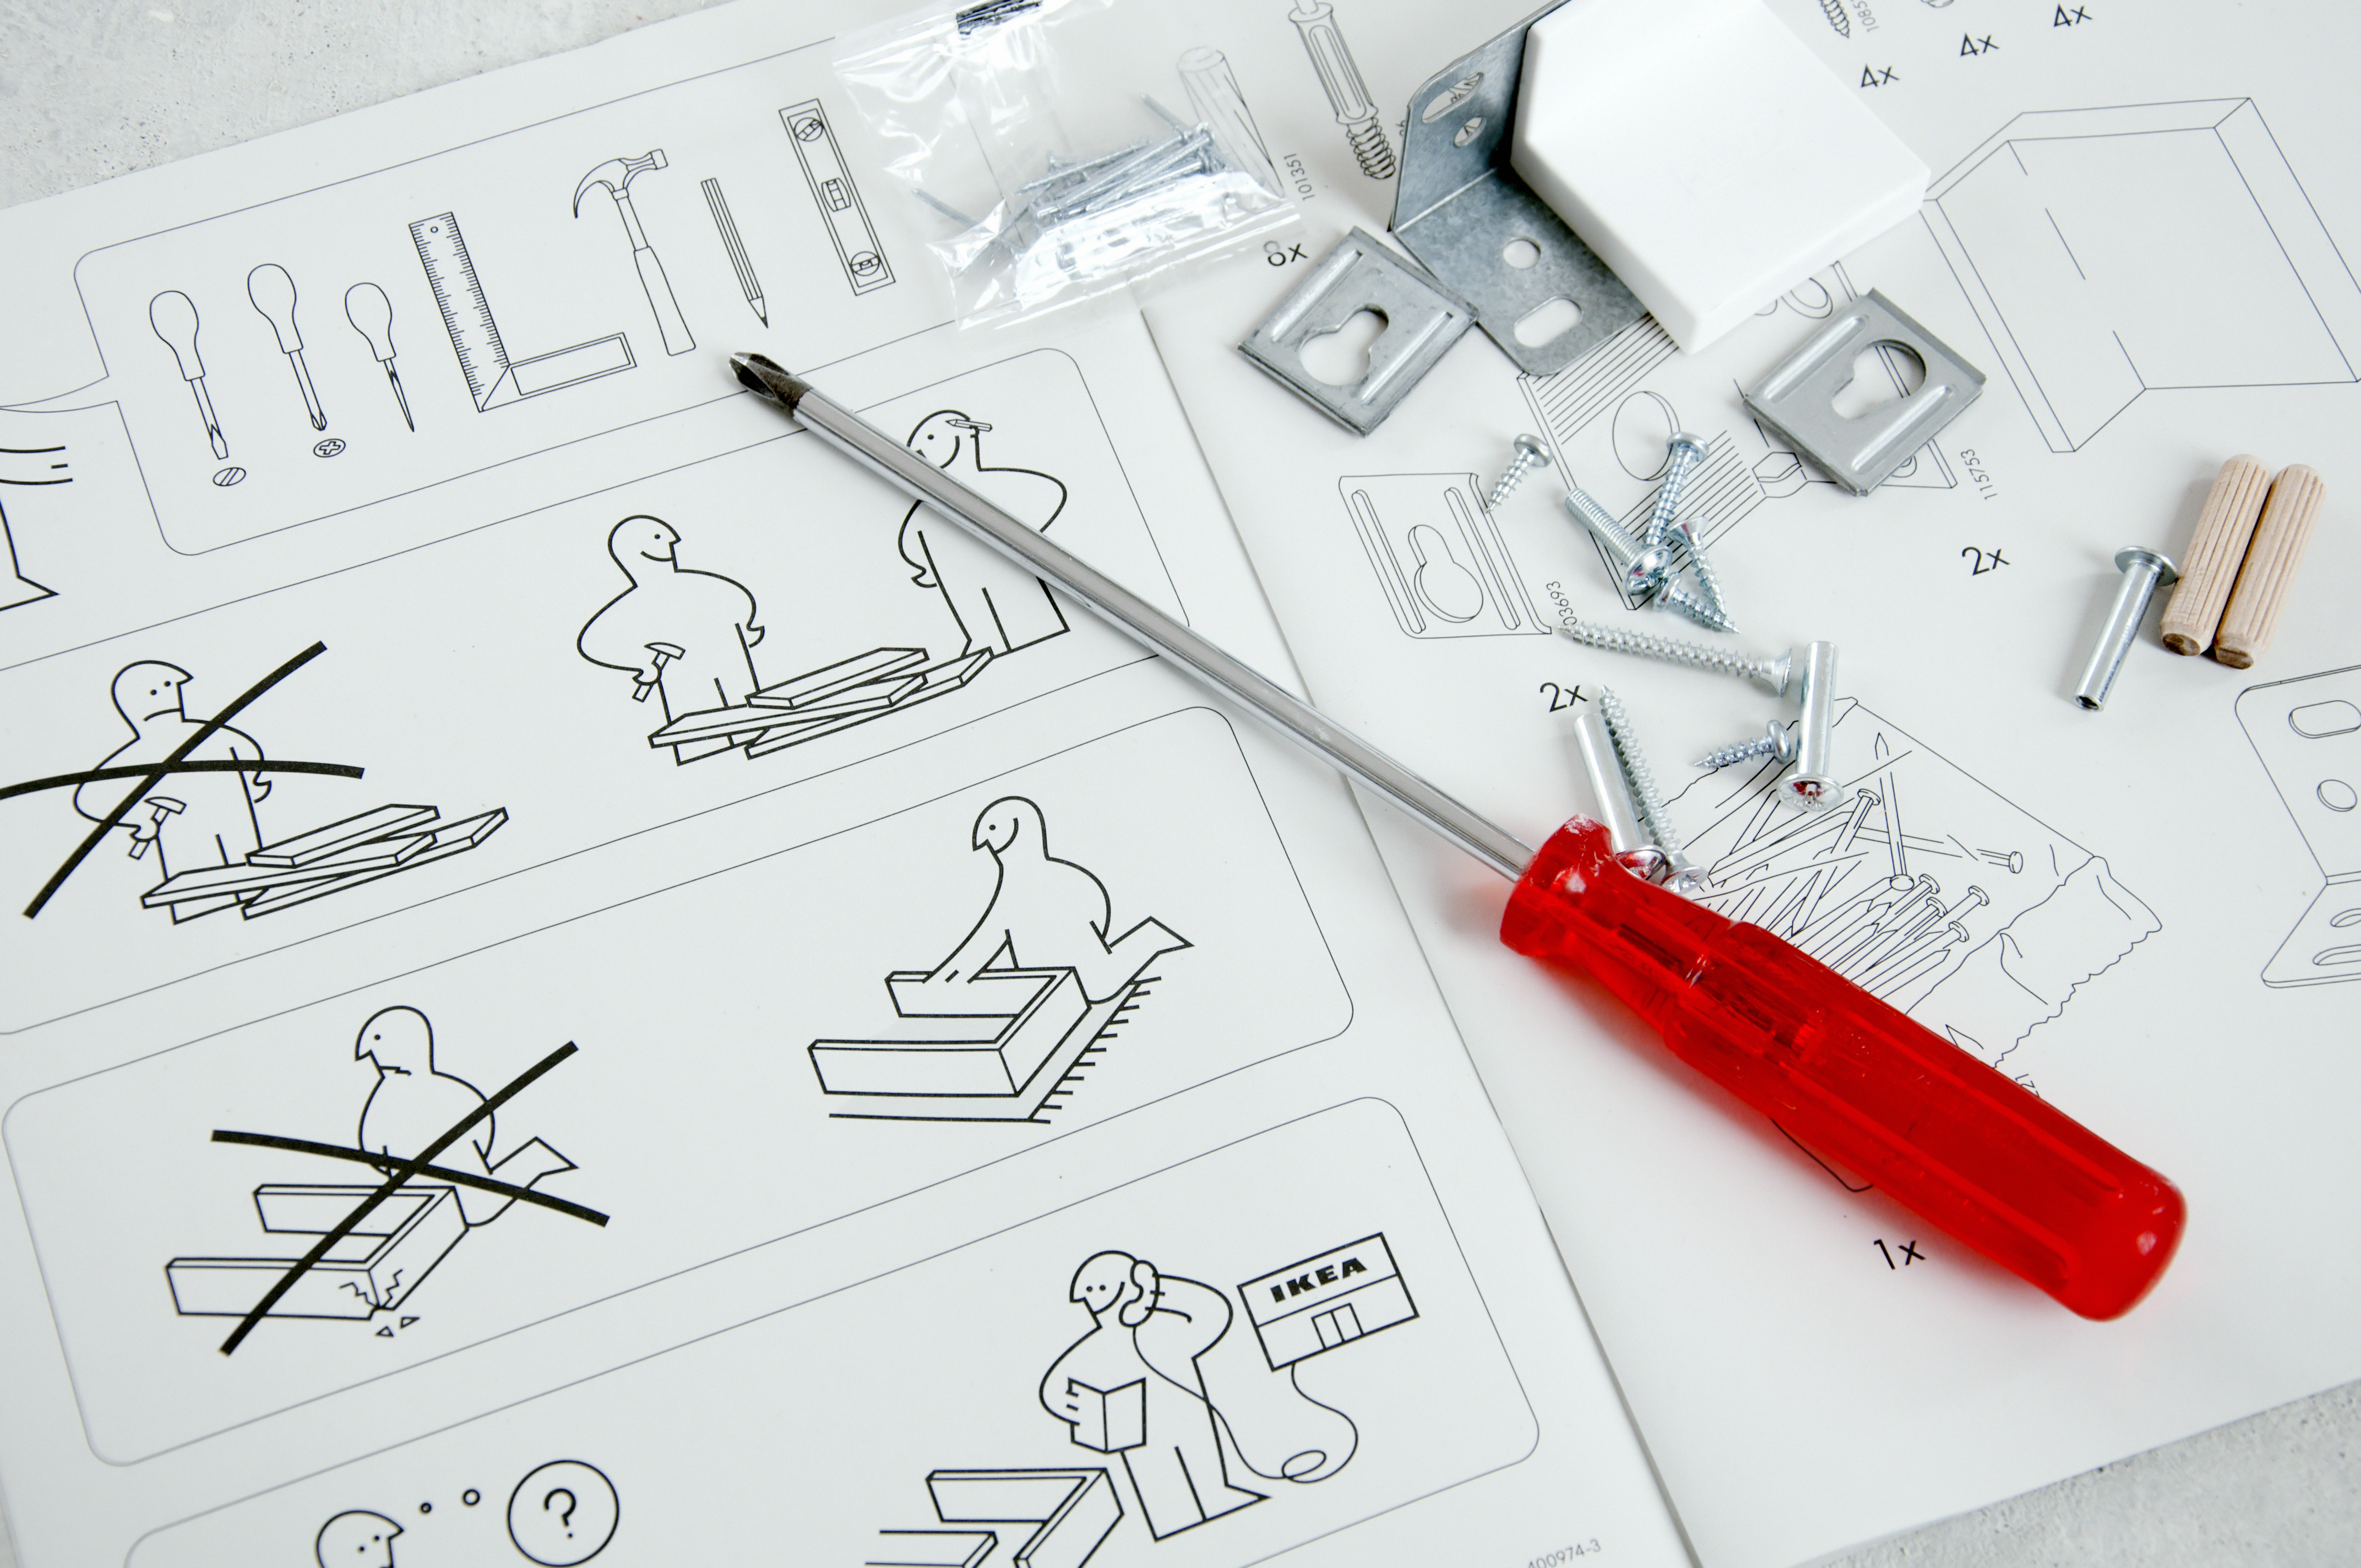 IKEA instruction manual with screwdriver and screws